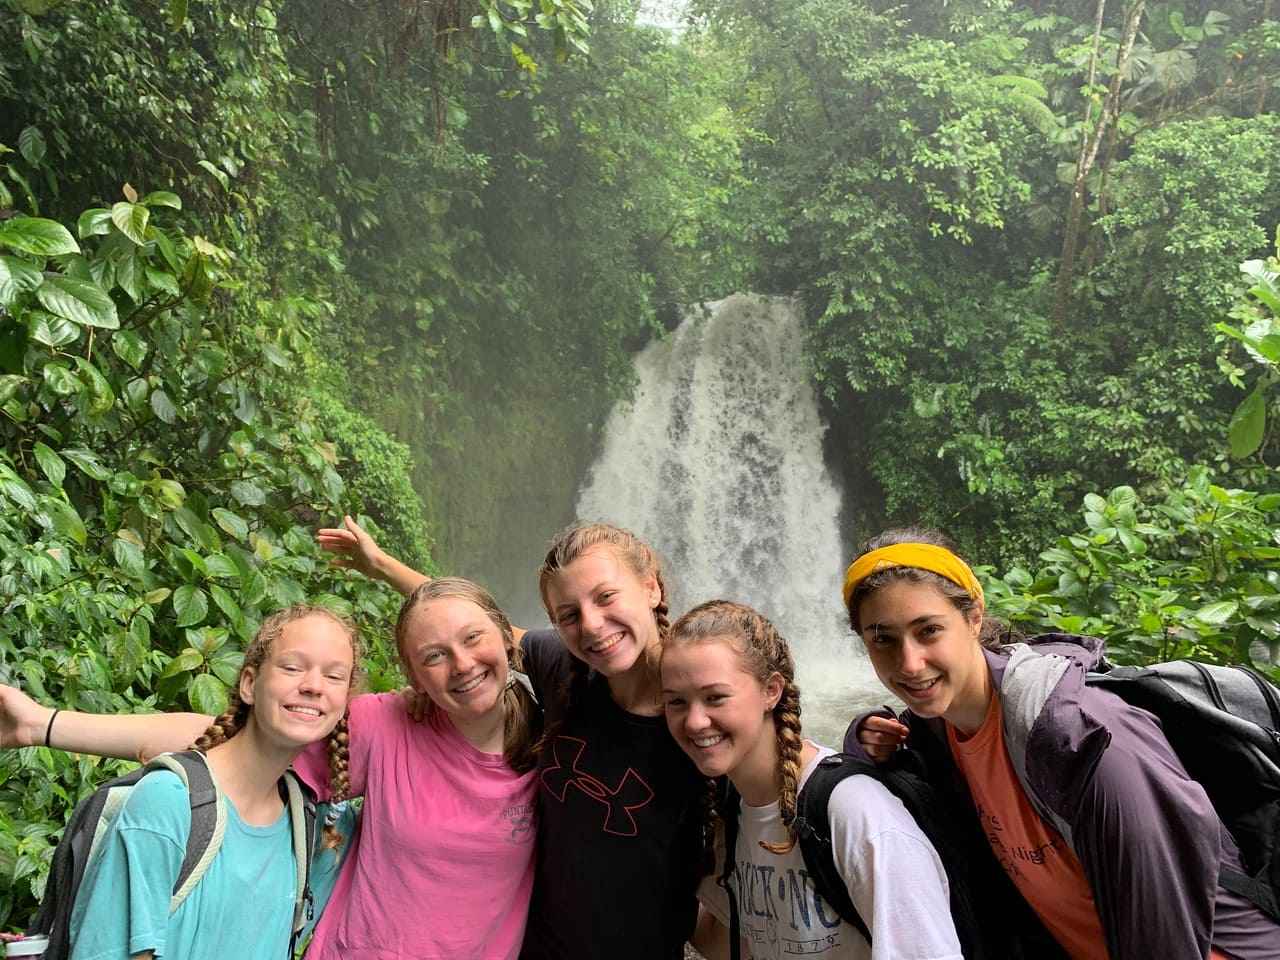 Teens gather for a group photo on a summer hike in Costa Rica